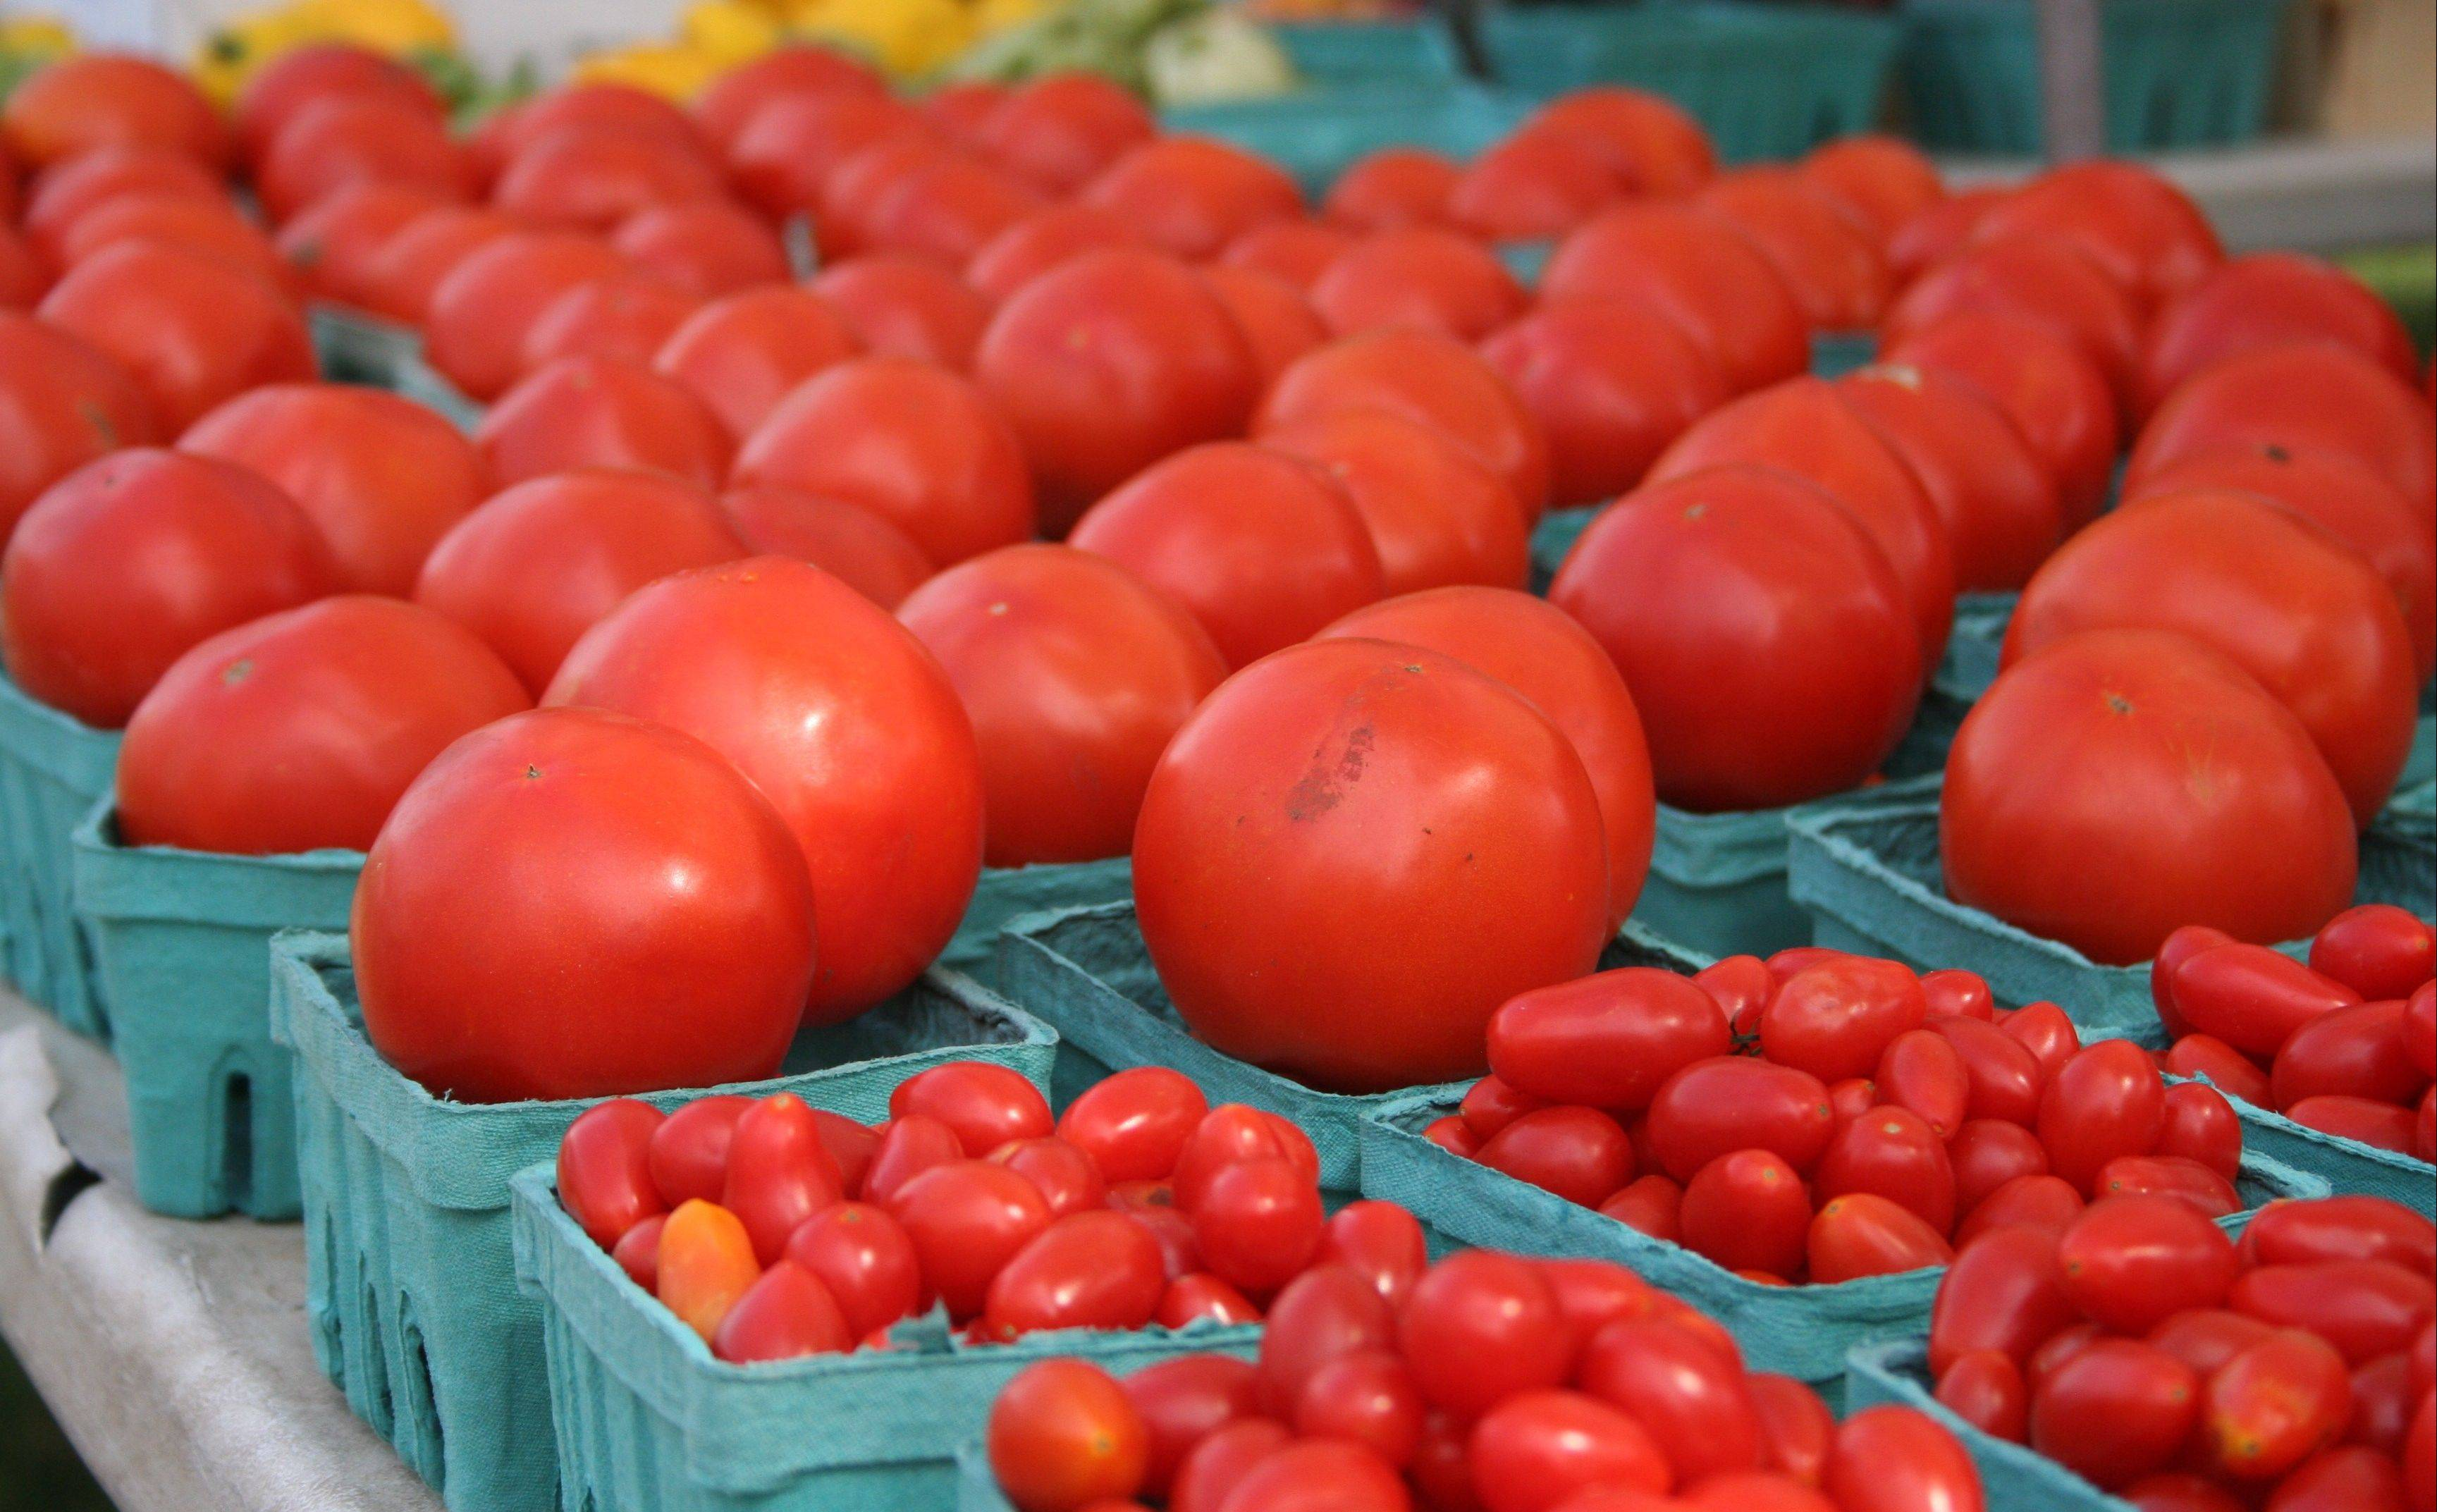 Homegrown tomatoes are always a favorite at farmers markets throughout the Chicago suburbs.